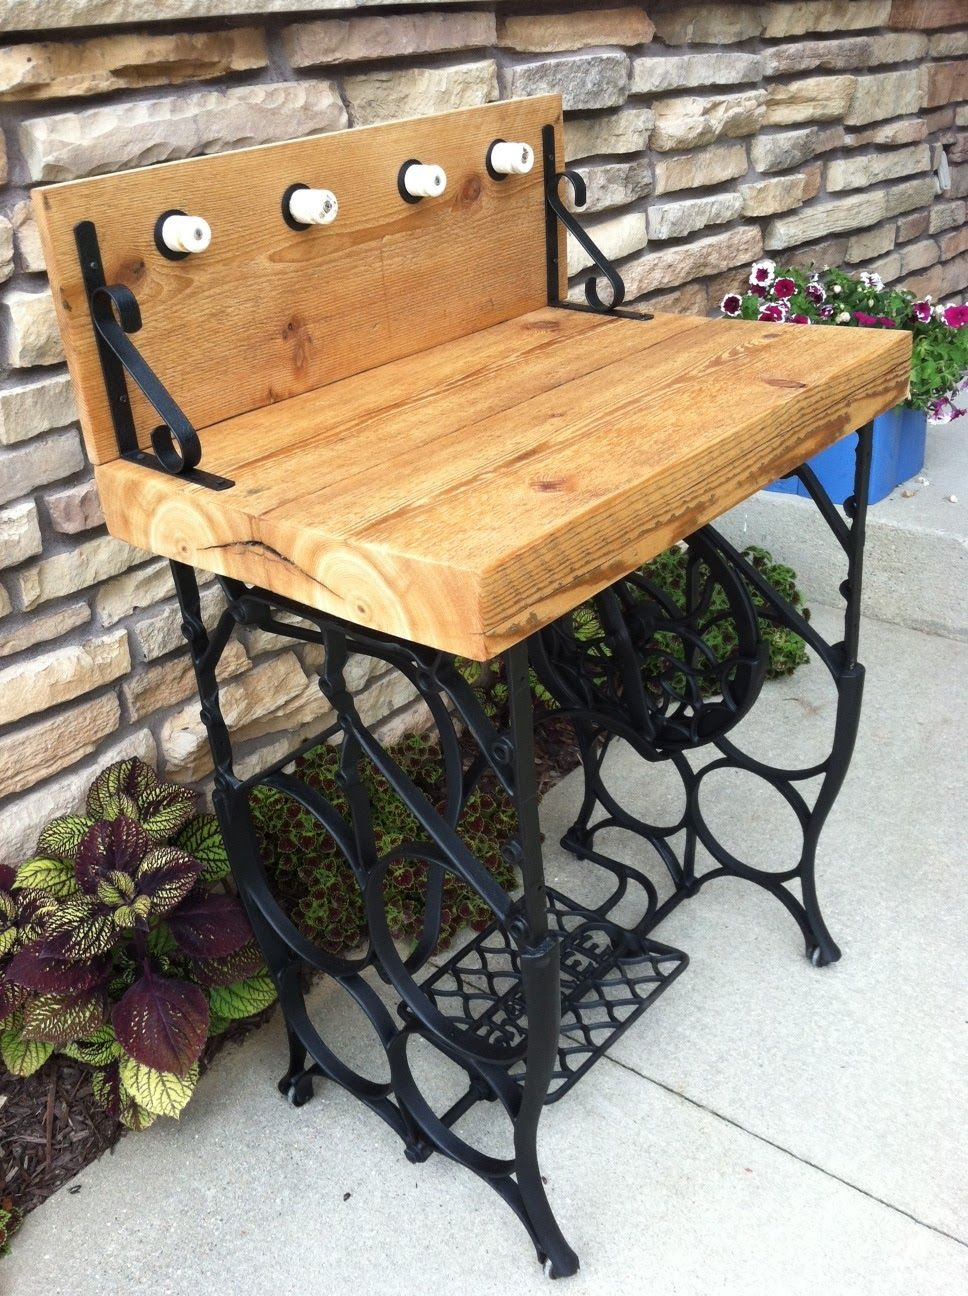 Design Sewing Machine Base Table phantastic phinds 10 ideas for repurposing old sewing machines machines